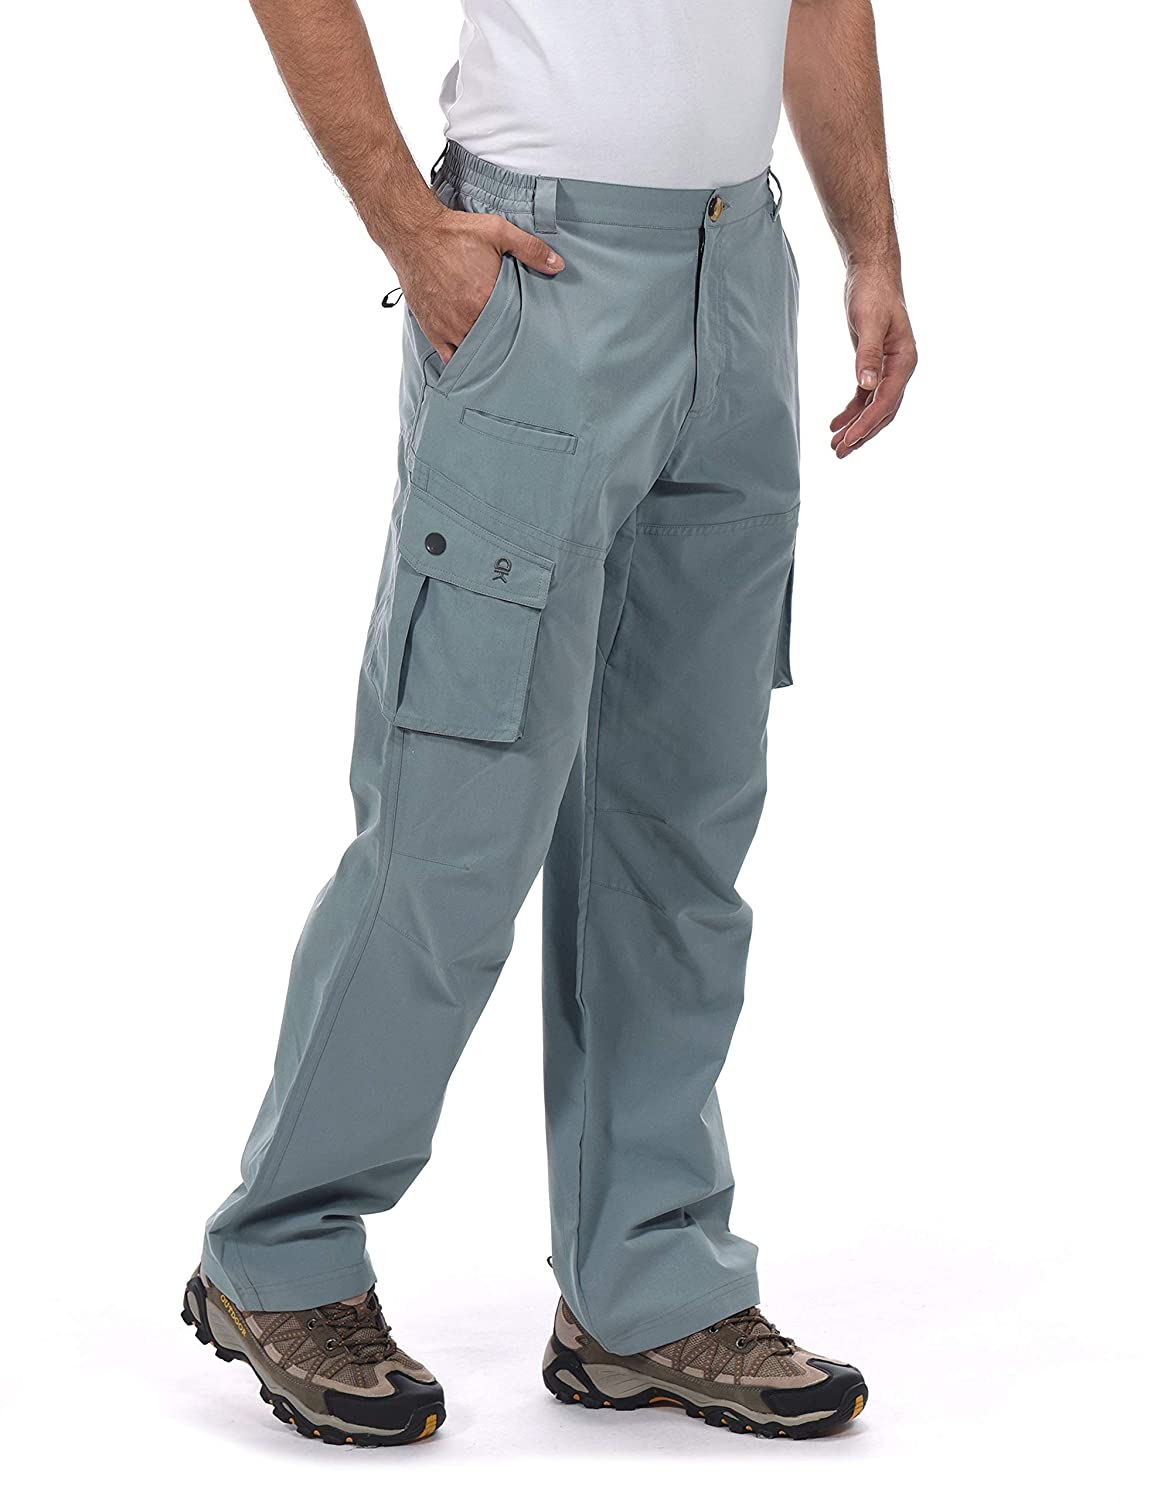 Little Donkey Andy Men/'s UPF 50 Moisture Wicking Hiking Pants Lightweight and Breathable UV Protection Cargo Pants